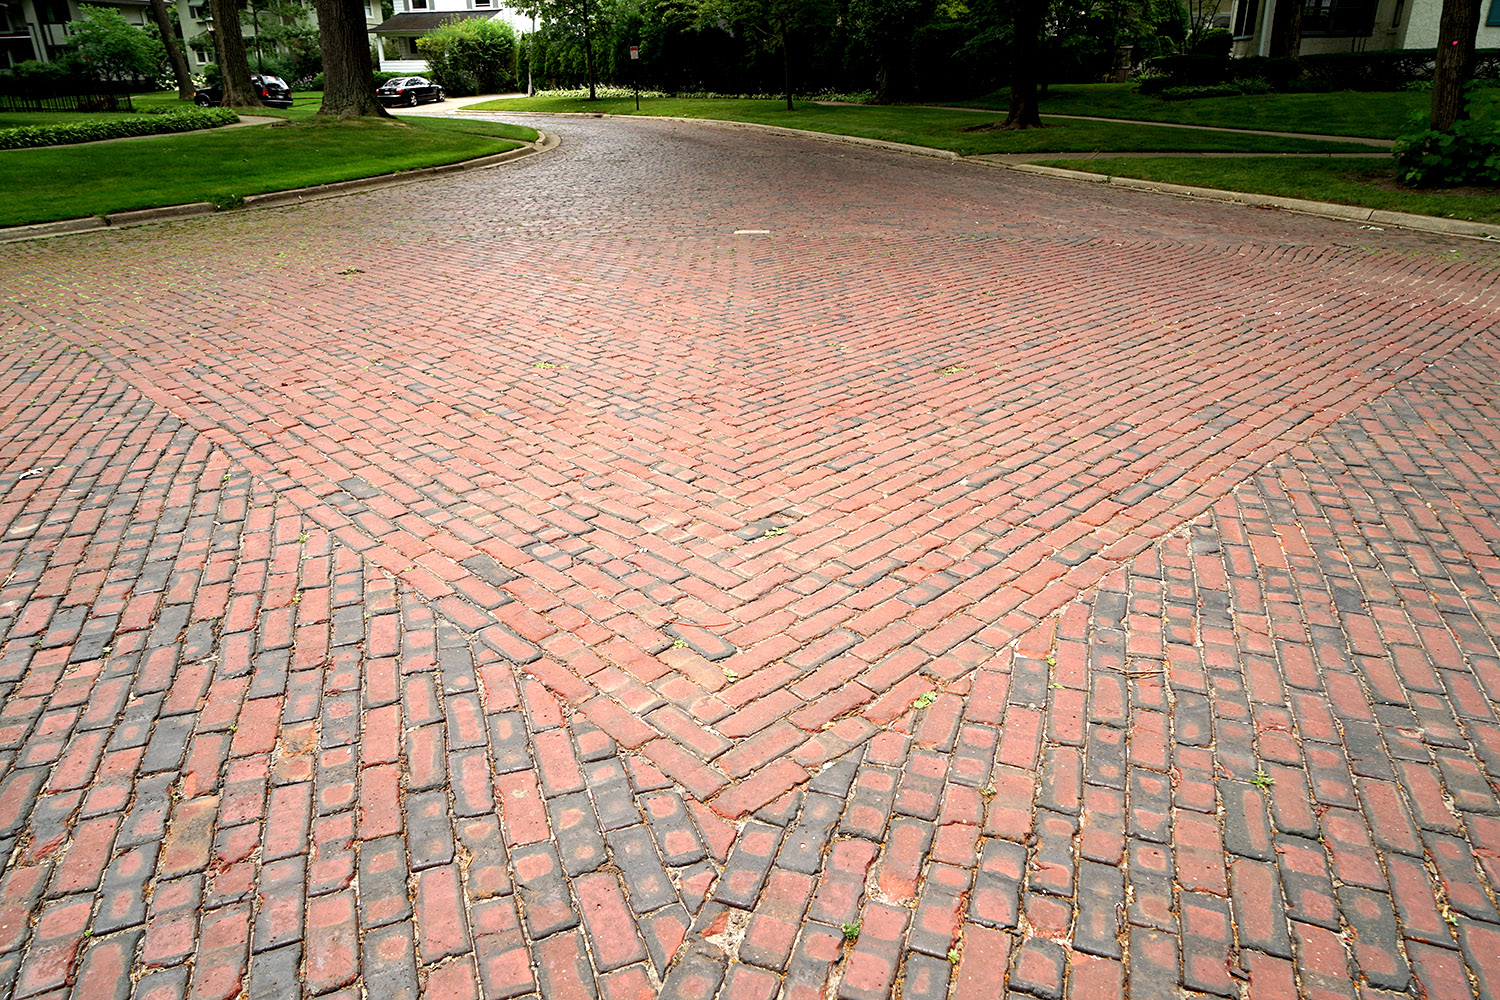 Vitrified brick pavement, intersection of Woodbine Avenue and Crescent Place, Wilmette, Illinois, 2016. Photo by author.